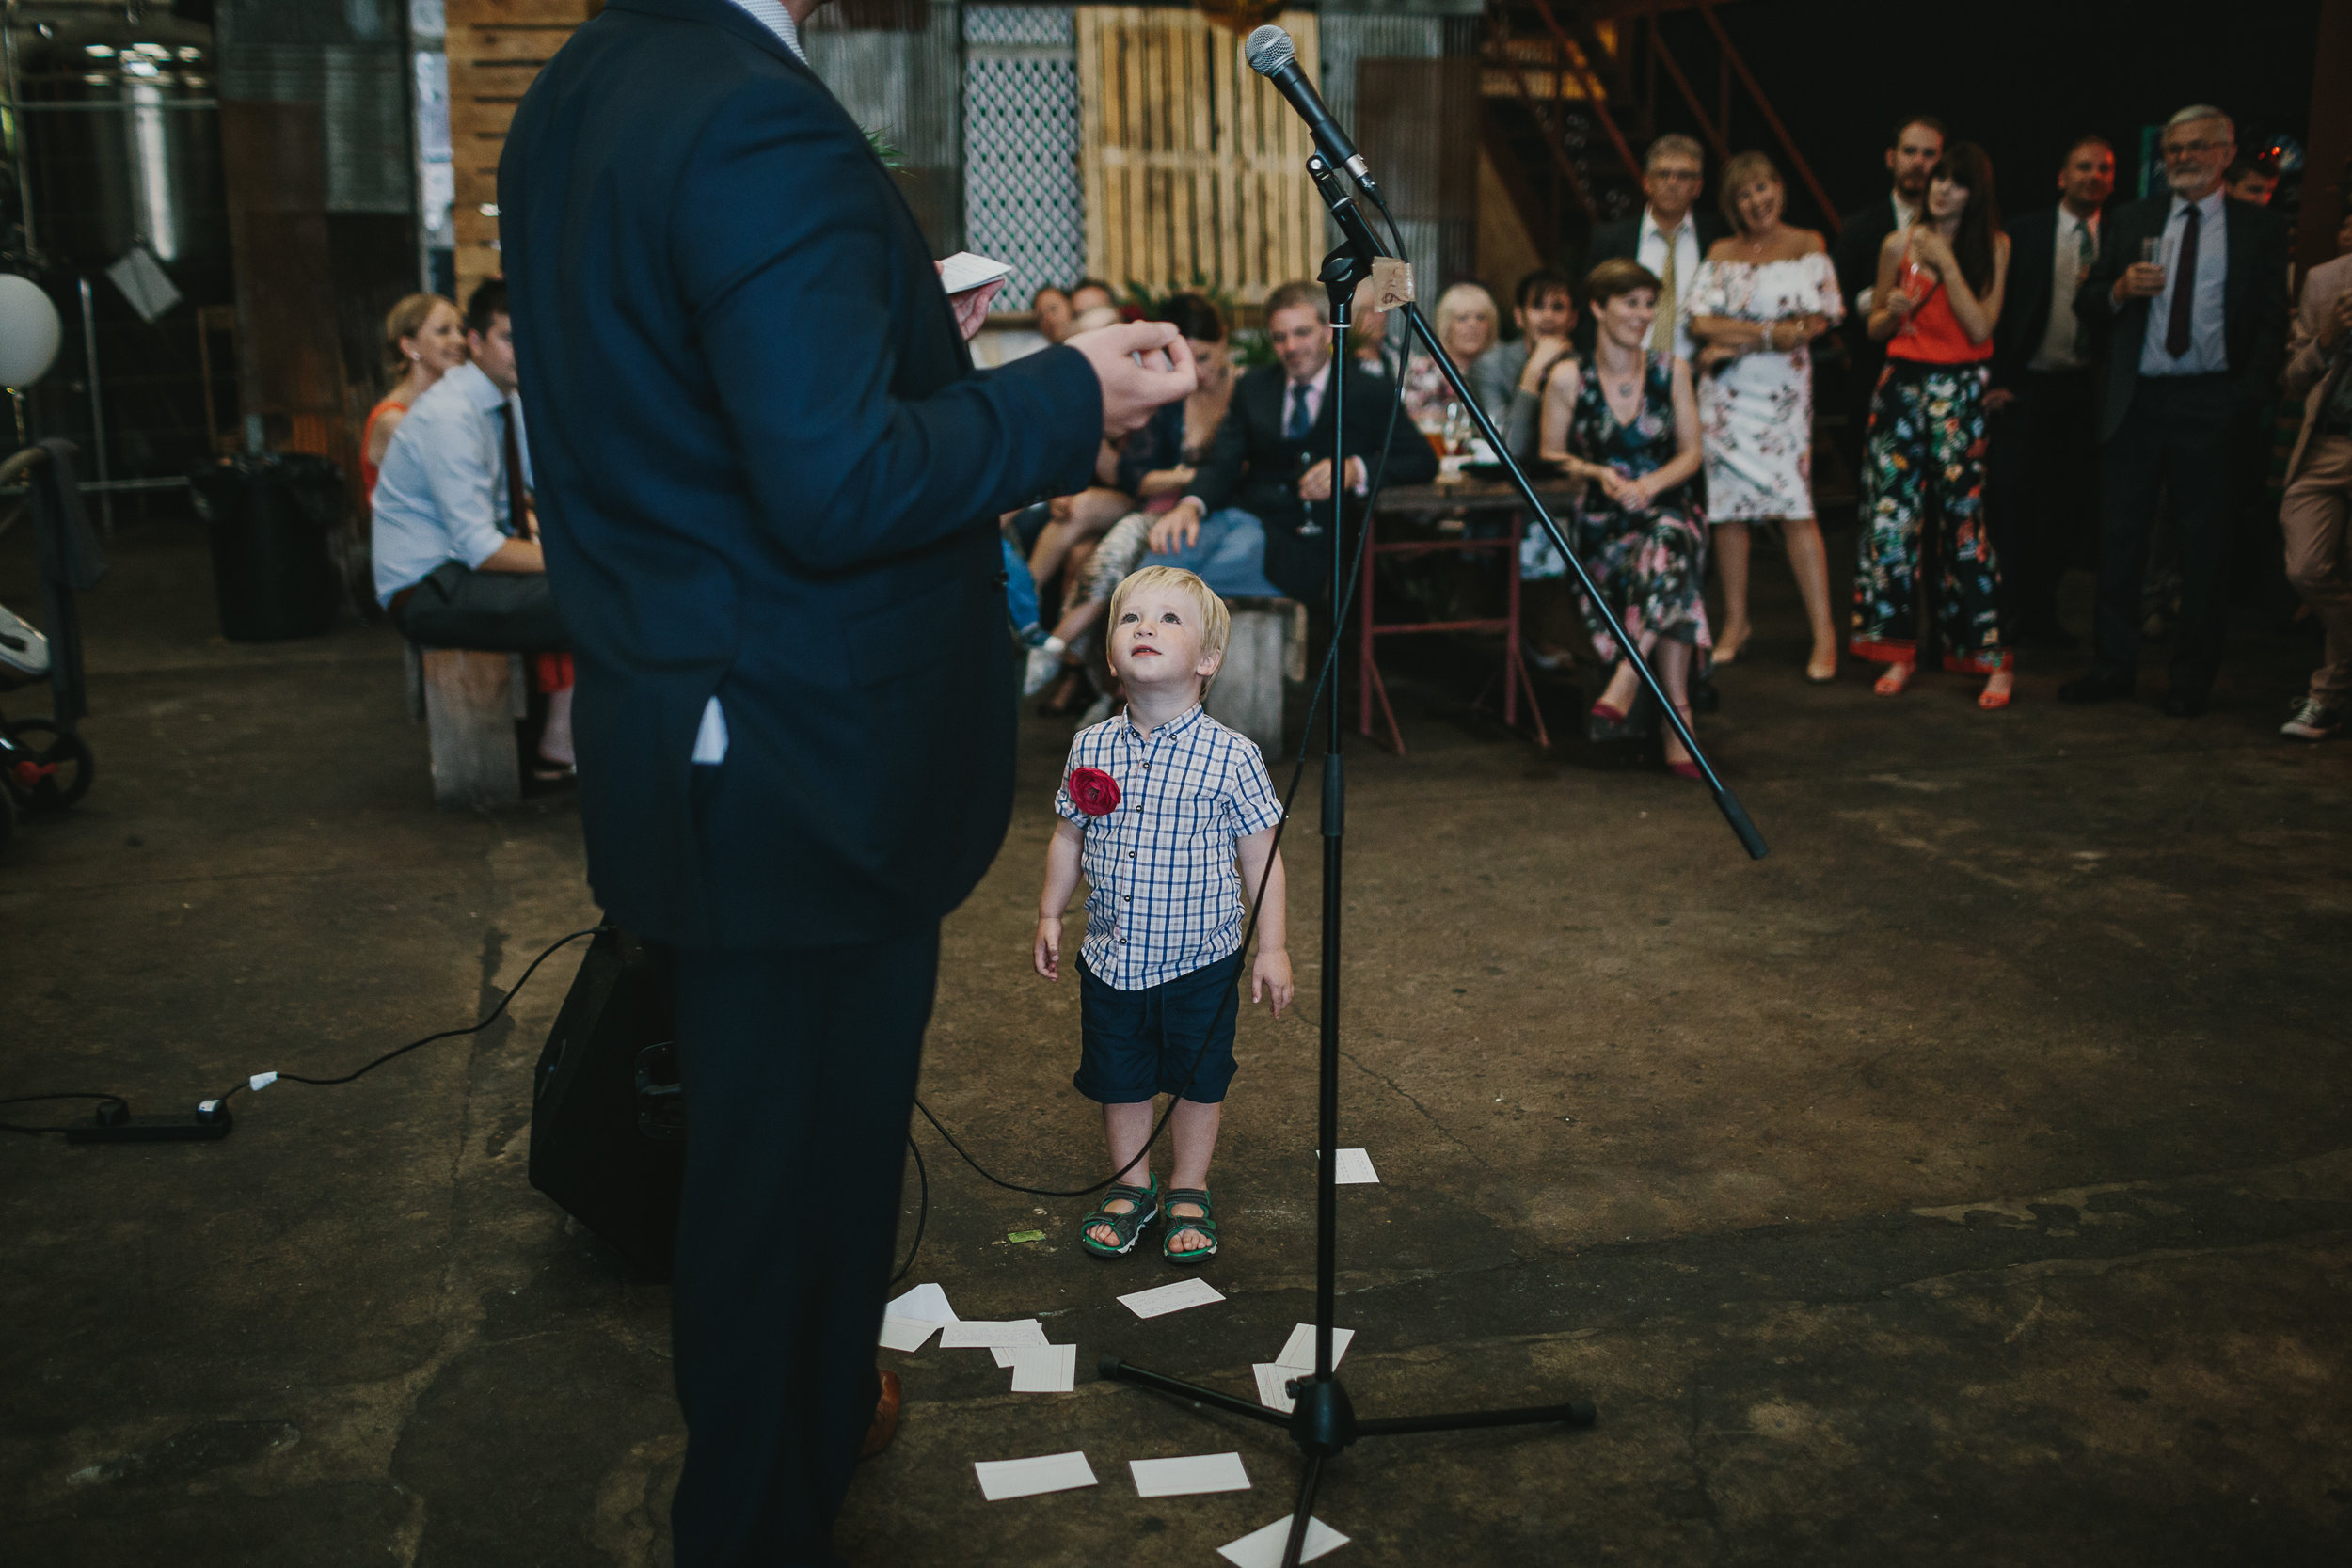 London_Brewery_Wedding_23.JPG